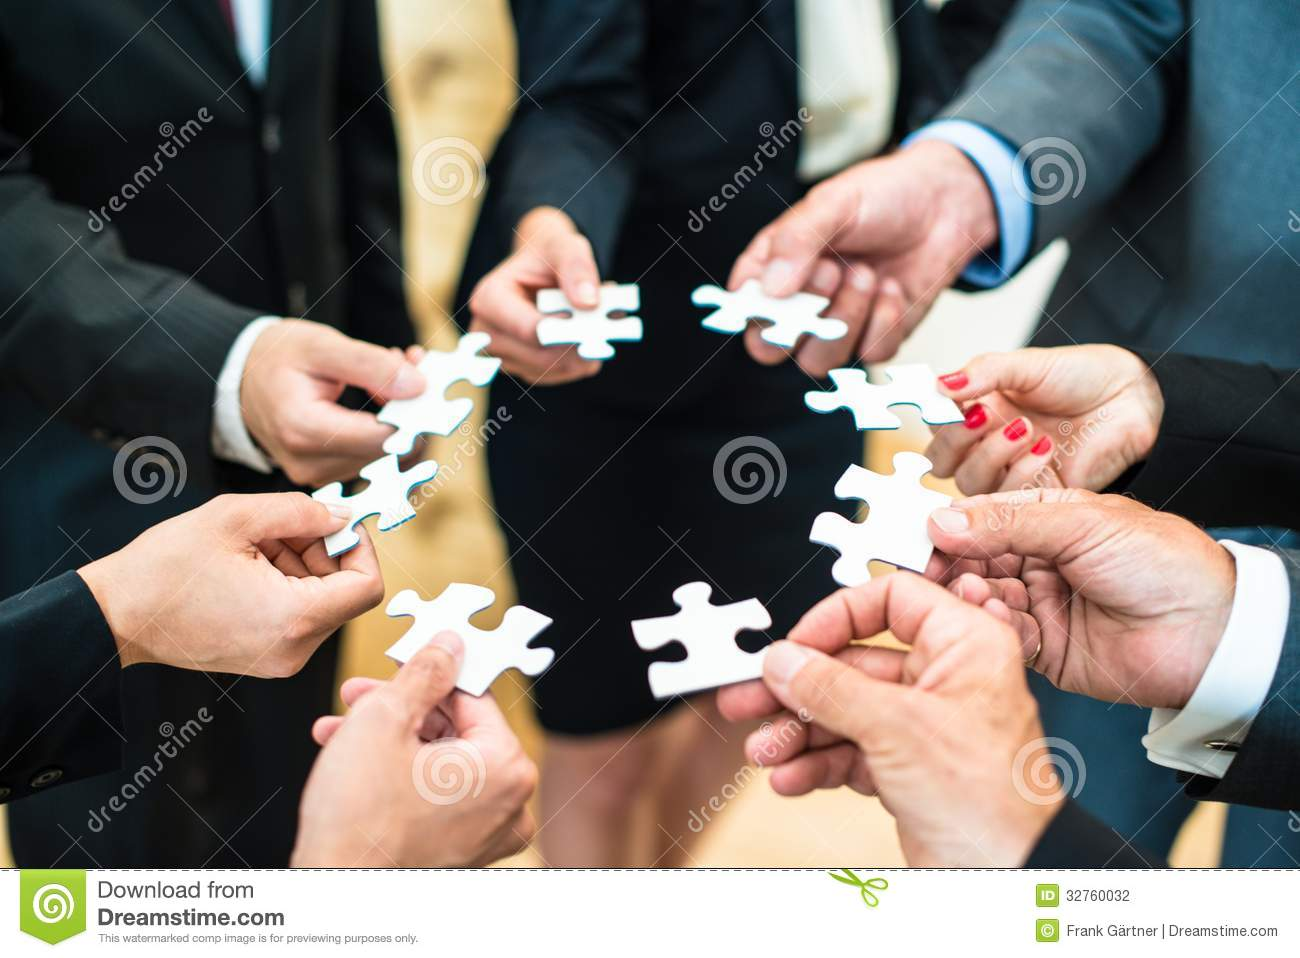 teamwork-business-people-solving-puzzle-